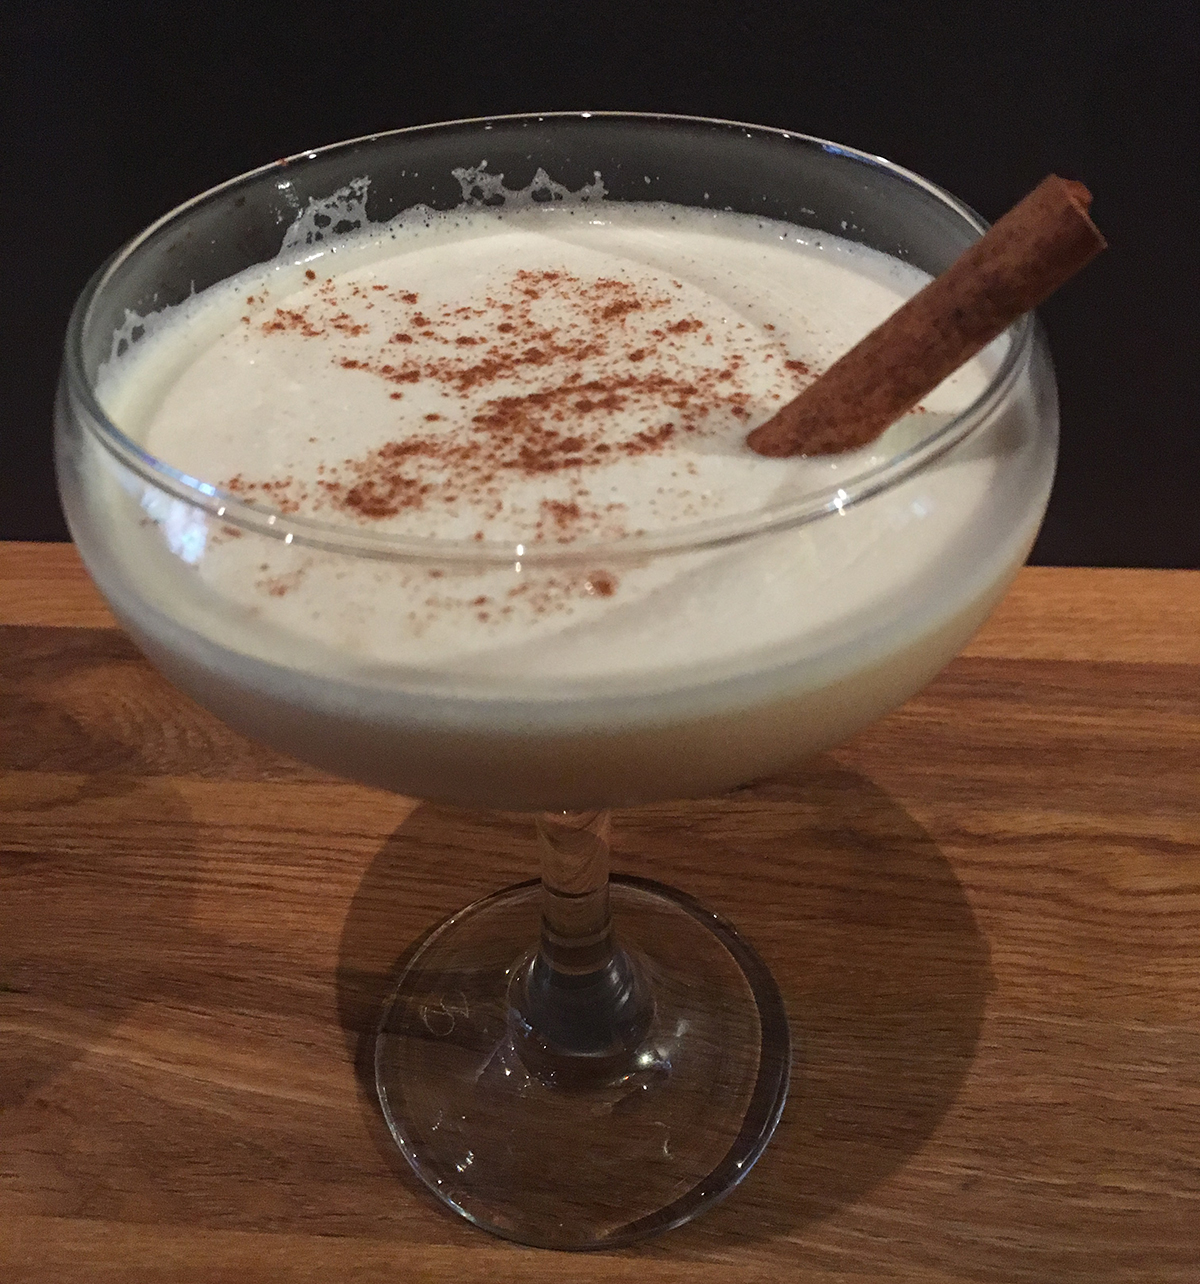 Casa B will have a couple Fluff specials, including the Canela Flufferum cocktail